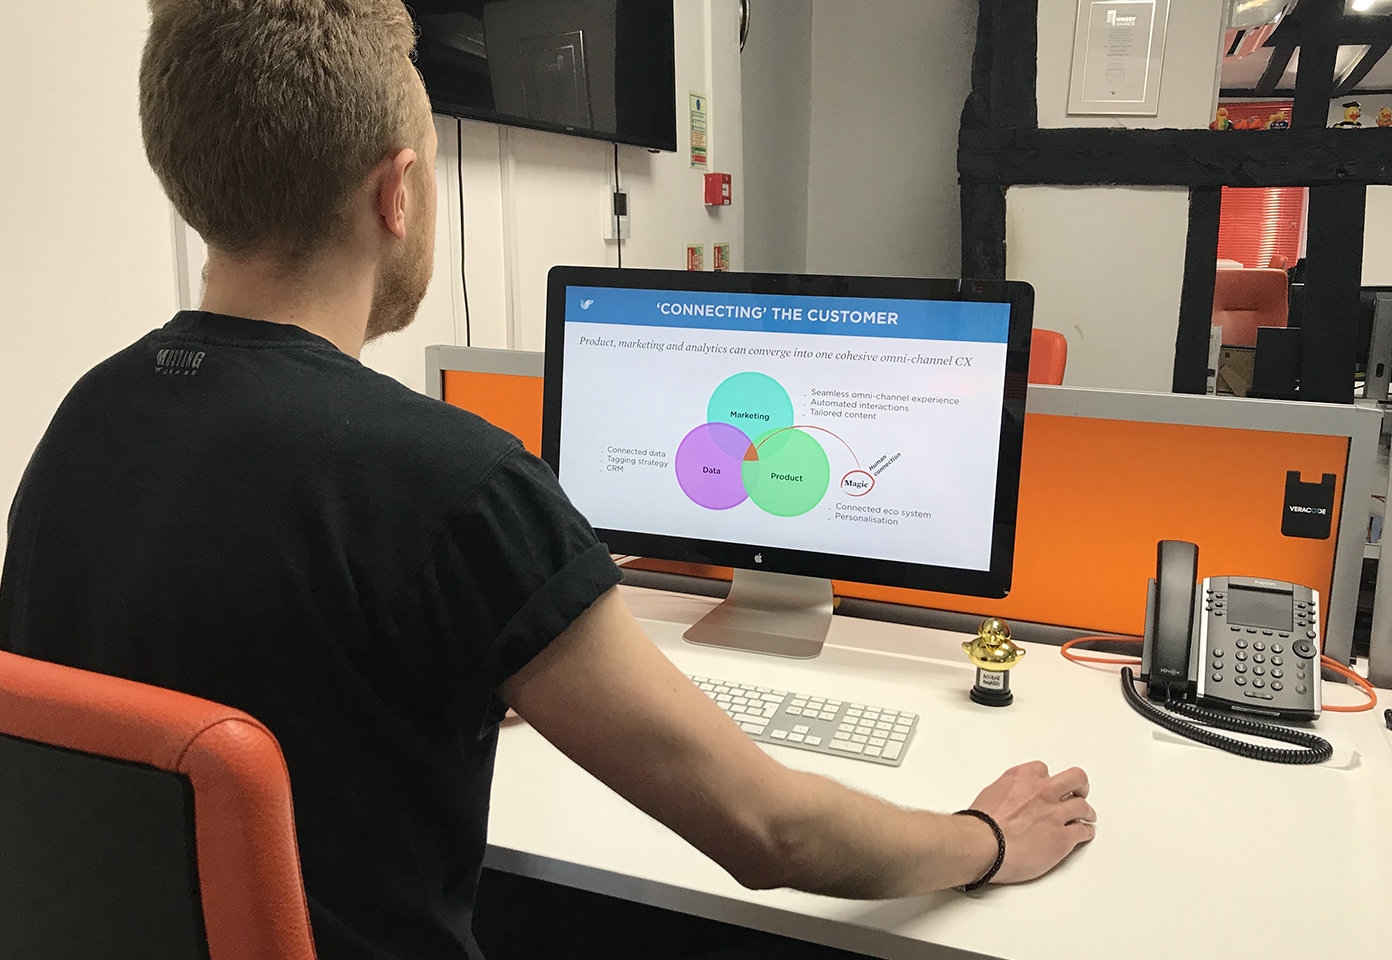 Jordan looking at a content marketing diagram